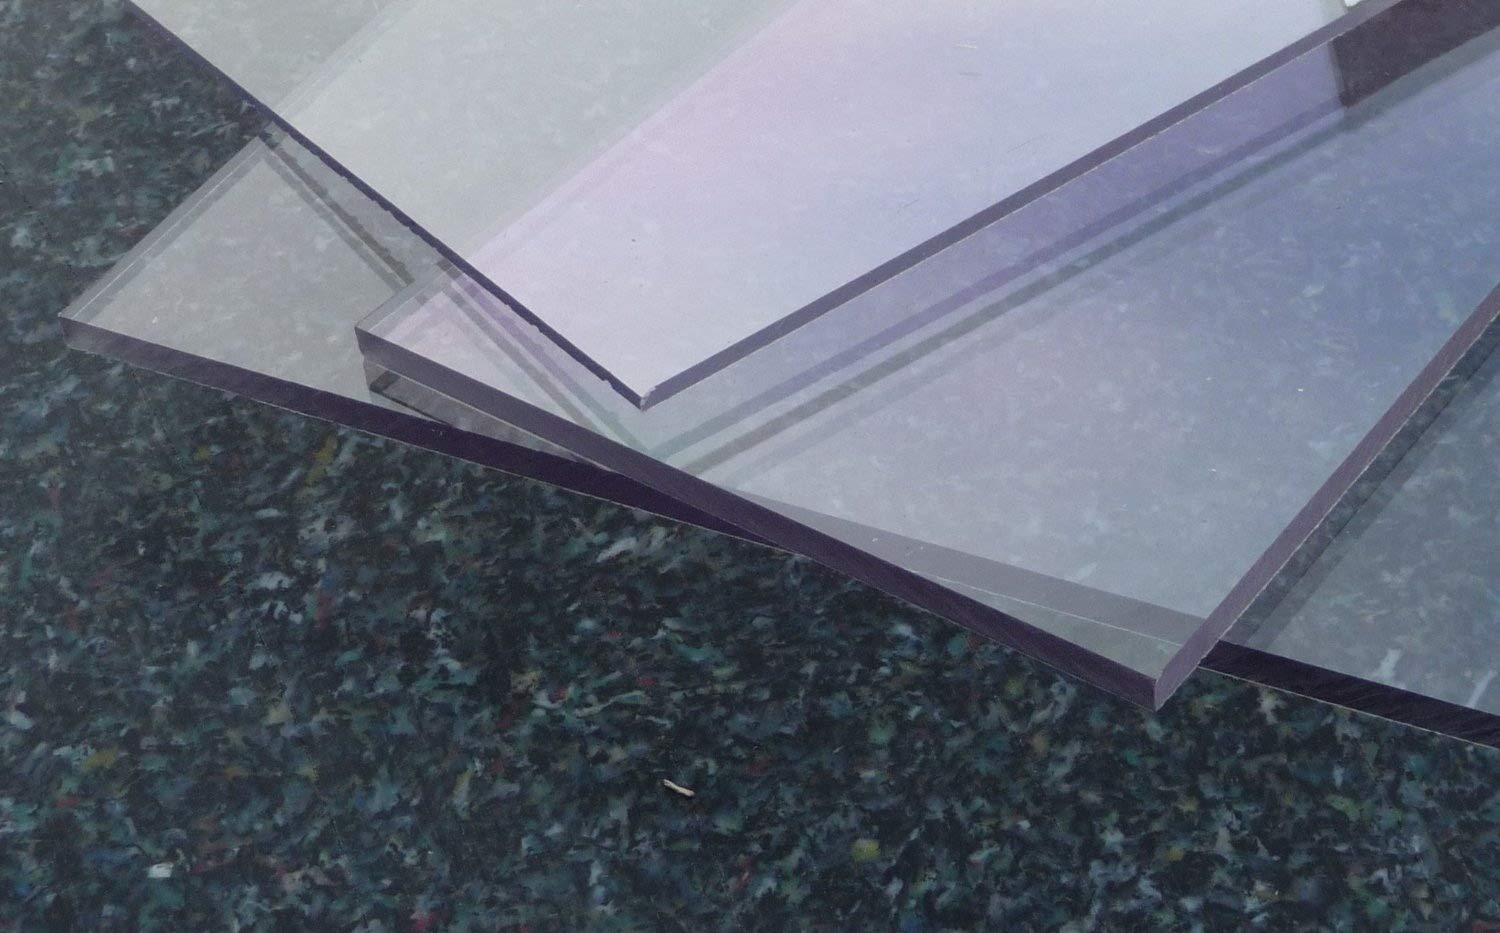 Clear solid polycarbonate sheet, 600 x 500 x 3 mm Plate Polycarbonate cut colorless alt-intech PC/PMMA Sheet